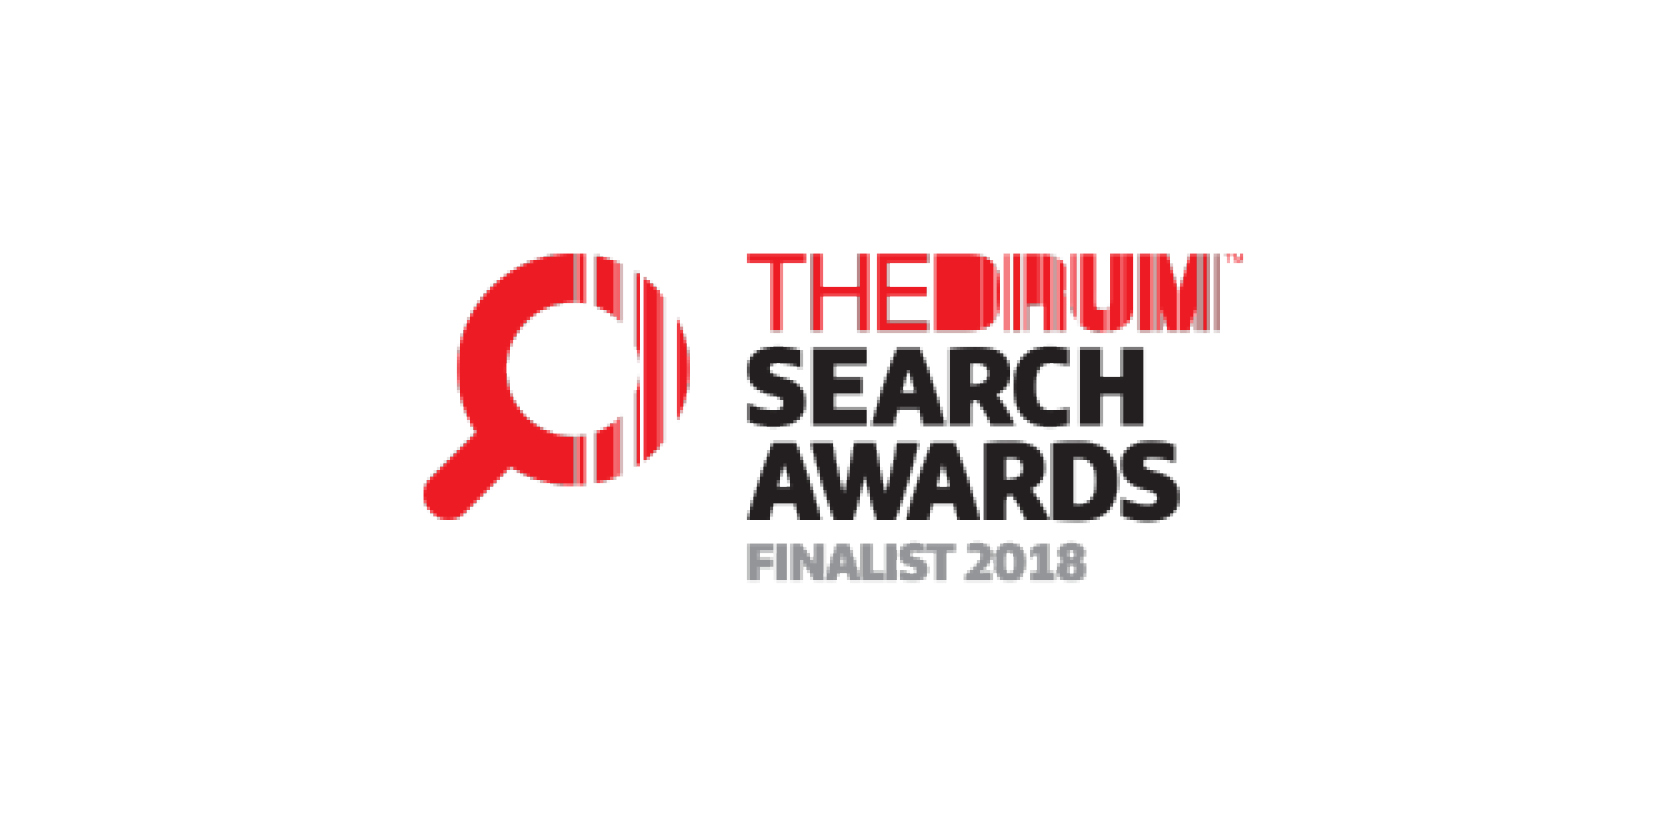 The Drum Search Awards 2018 Finalist